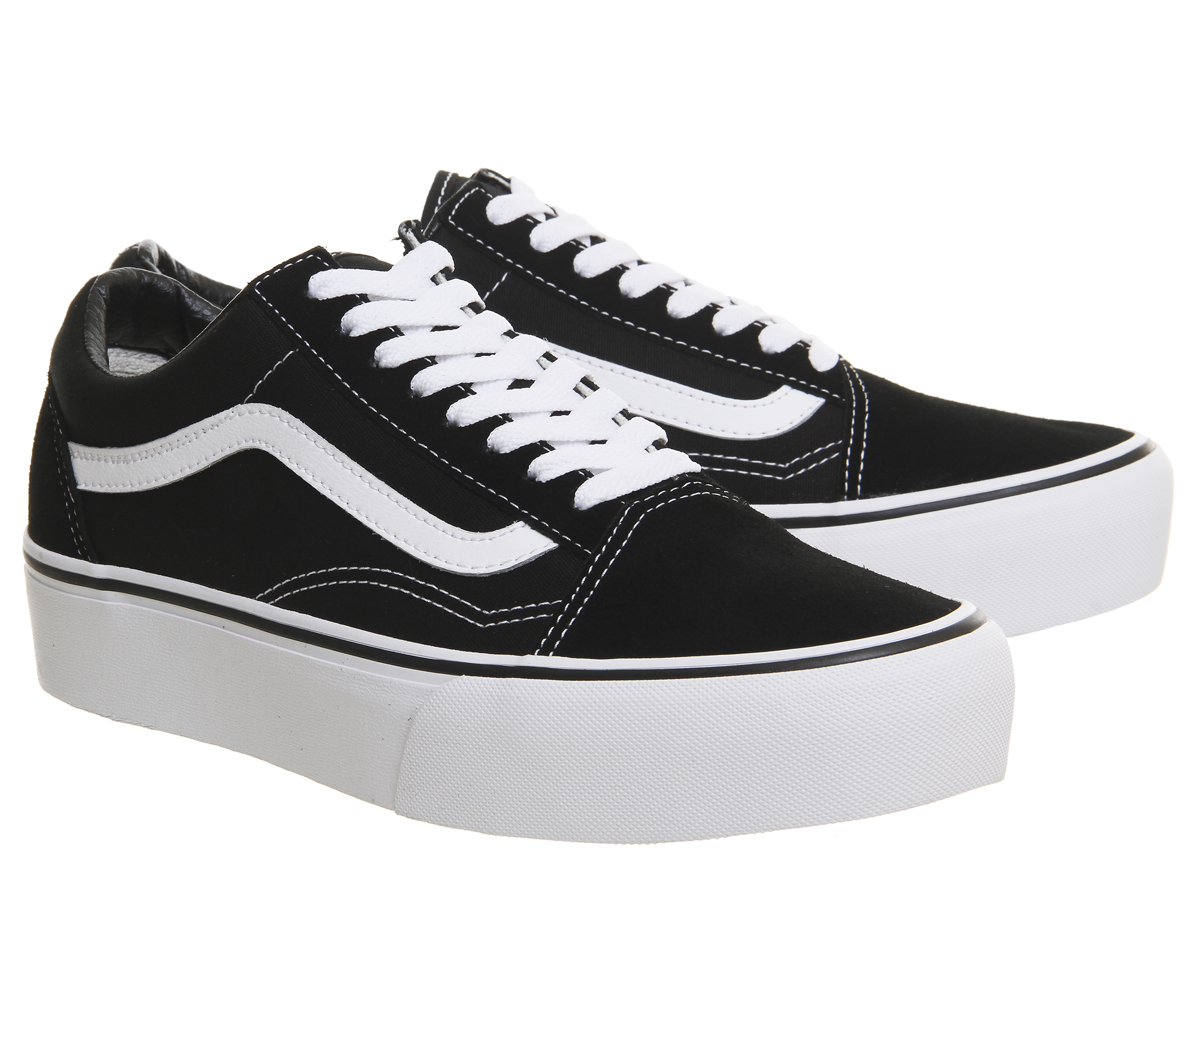 Details zu Womens Vans Old Skool Platform Black White Trainers Shoes